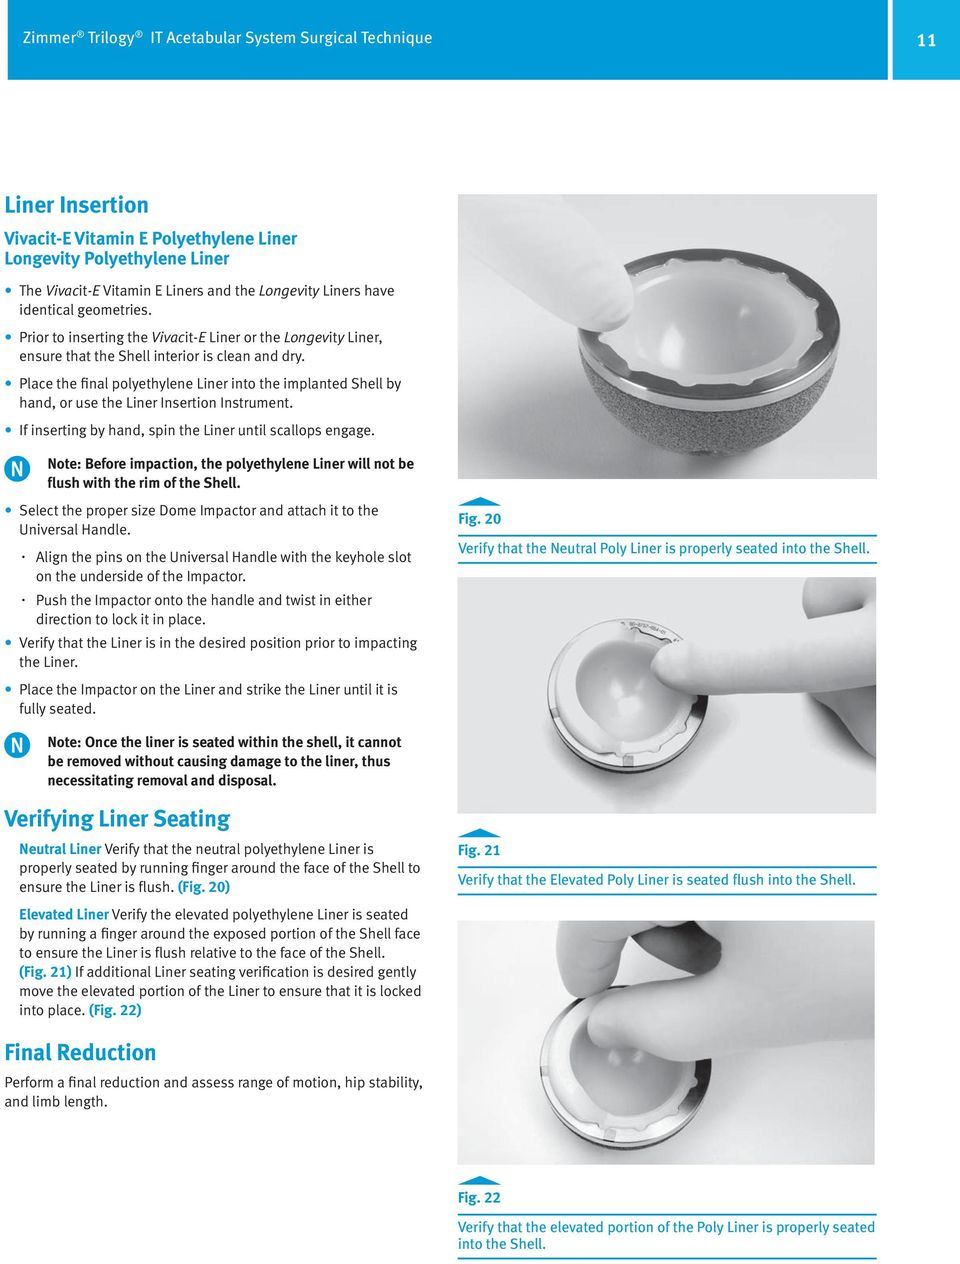 Place the final polyethylene Liner into the implanted Shell by hand, or use the Liner Insertion Instrument. If inserting by hand, spin the Liner until scallops engage.